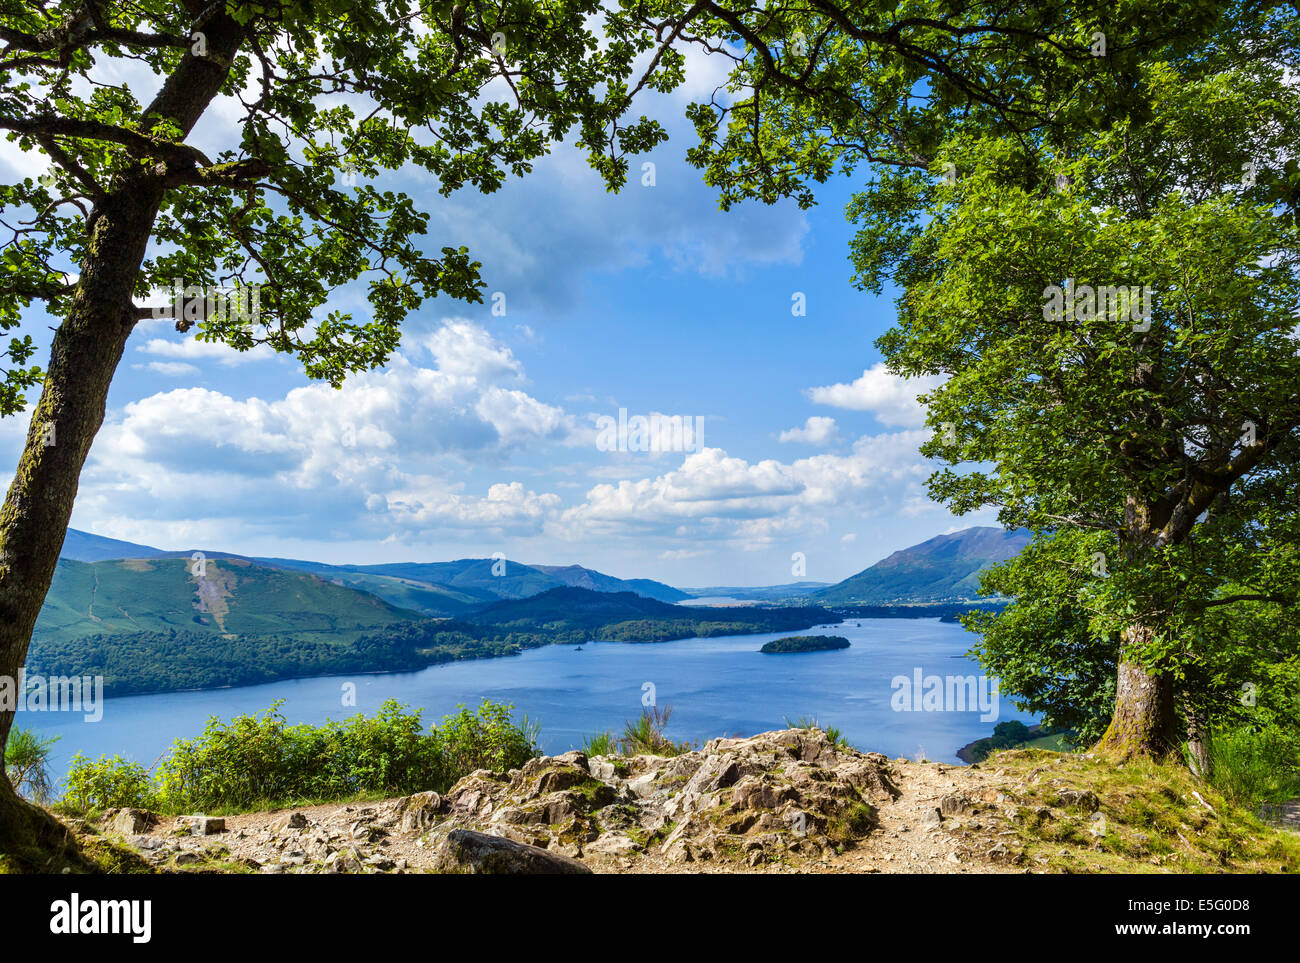 View over Derwentwater from Ashness, Borrowdale, Lake District, Cumbria, UK - Stock Image